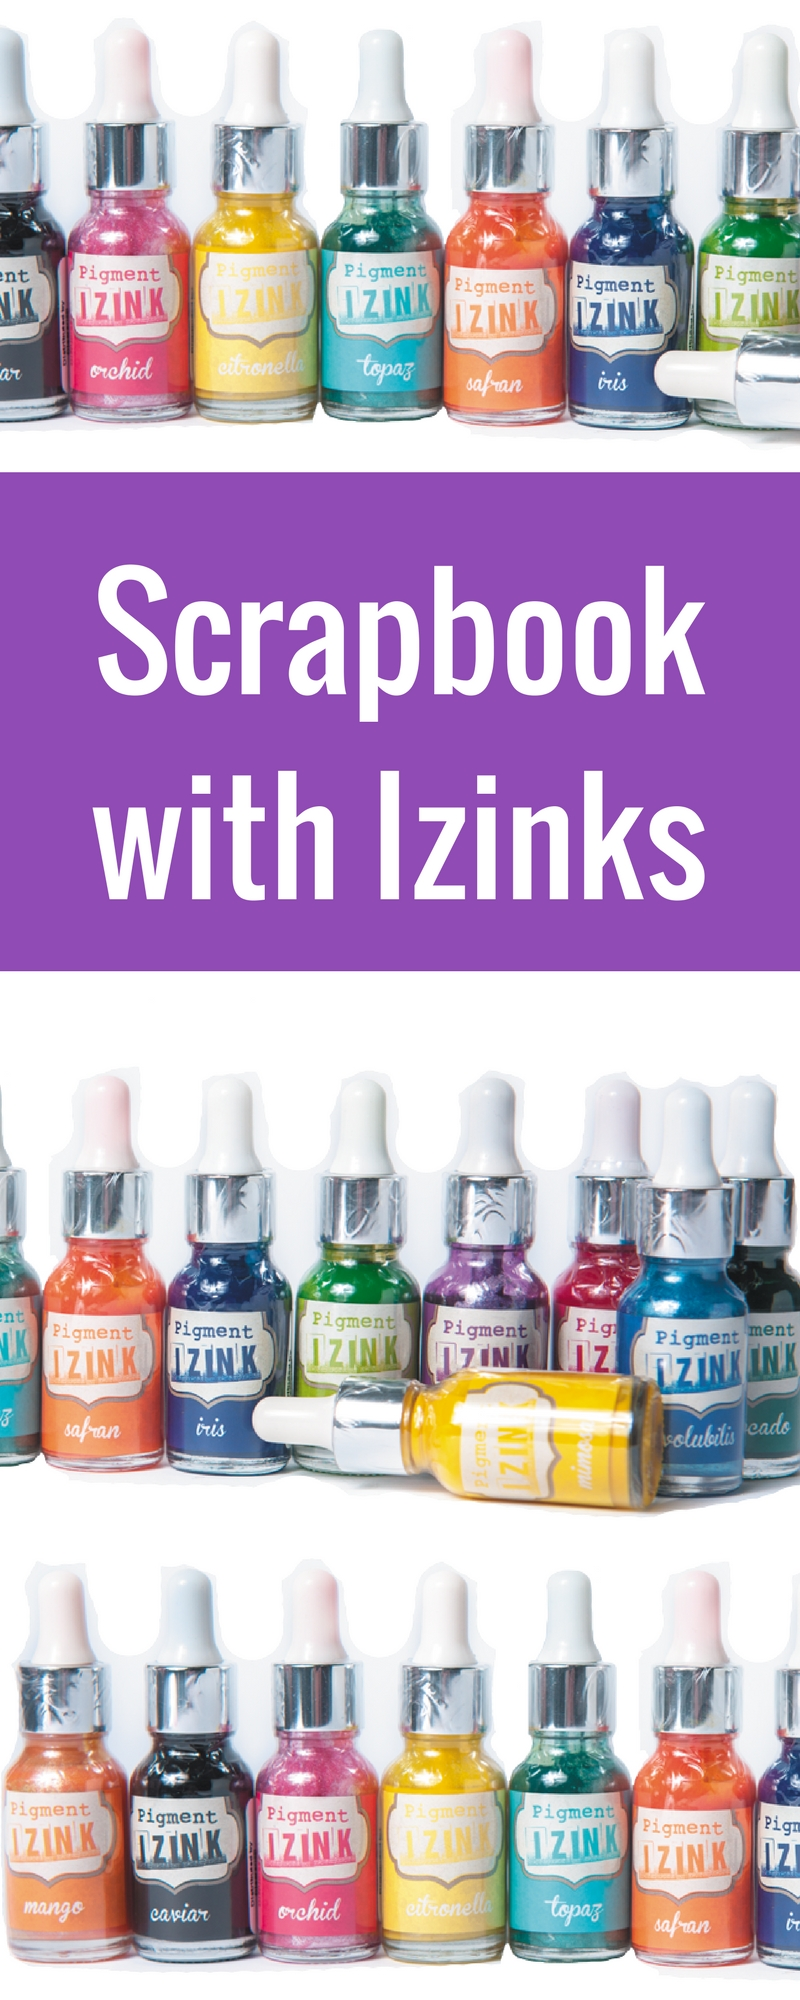 Izinks Distributed by Clearsnap | Scrapbooking | Creative Scrapbooker Magazine